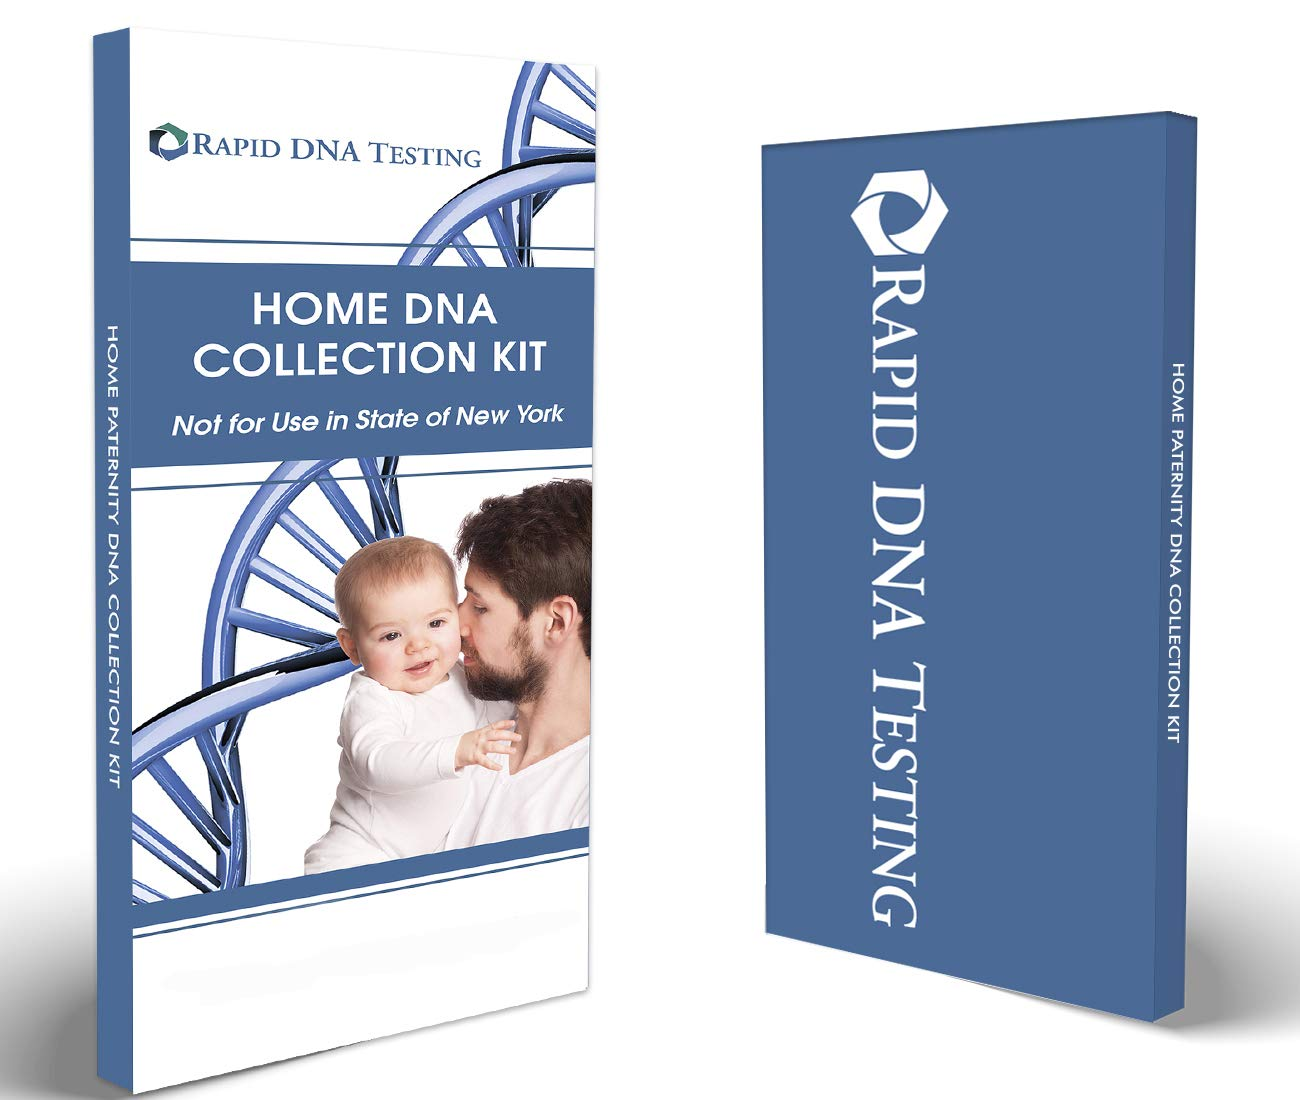 Rapid DNA Paternity Test Kit | All Lab Fees & Shipping to Lab Included | Confidential Results in 2 Business Days Accurate, Simple | in The Privacy of Your Home (Not Available in New York) by Rapid DNA Testing